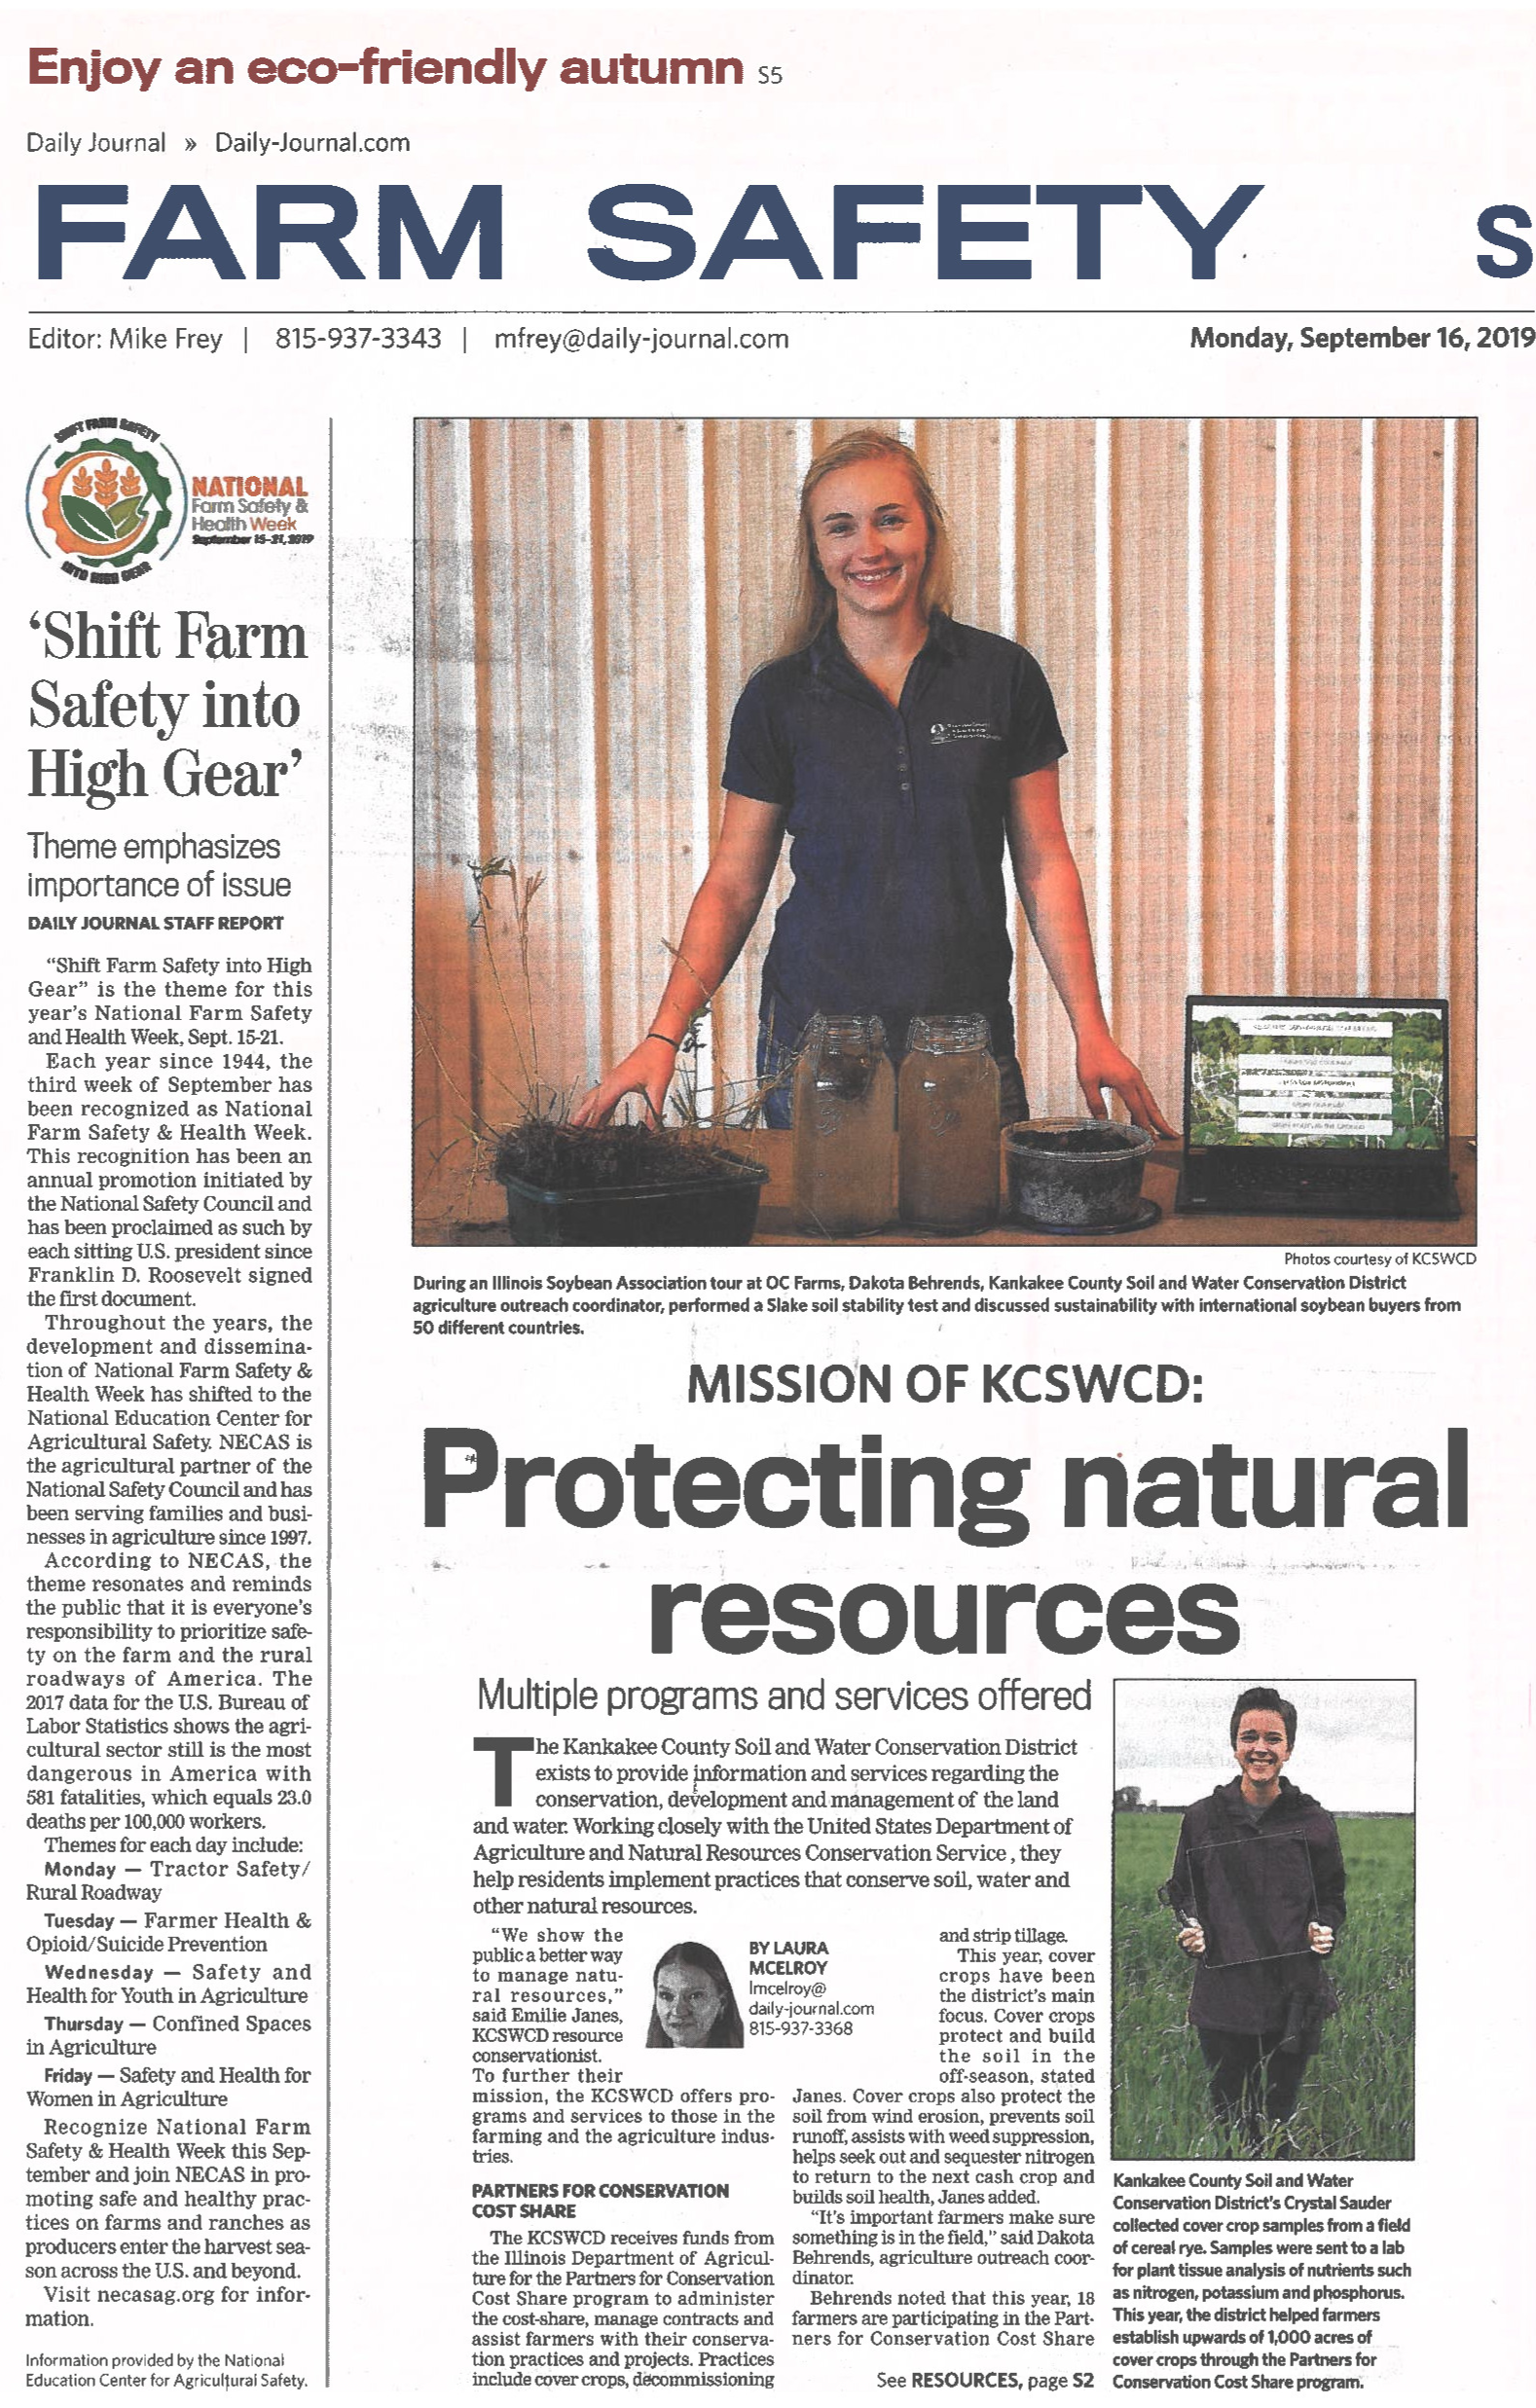 Farm Safety Week Daily Journal 9